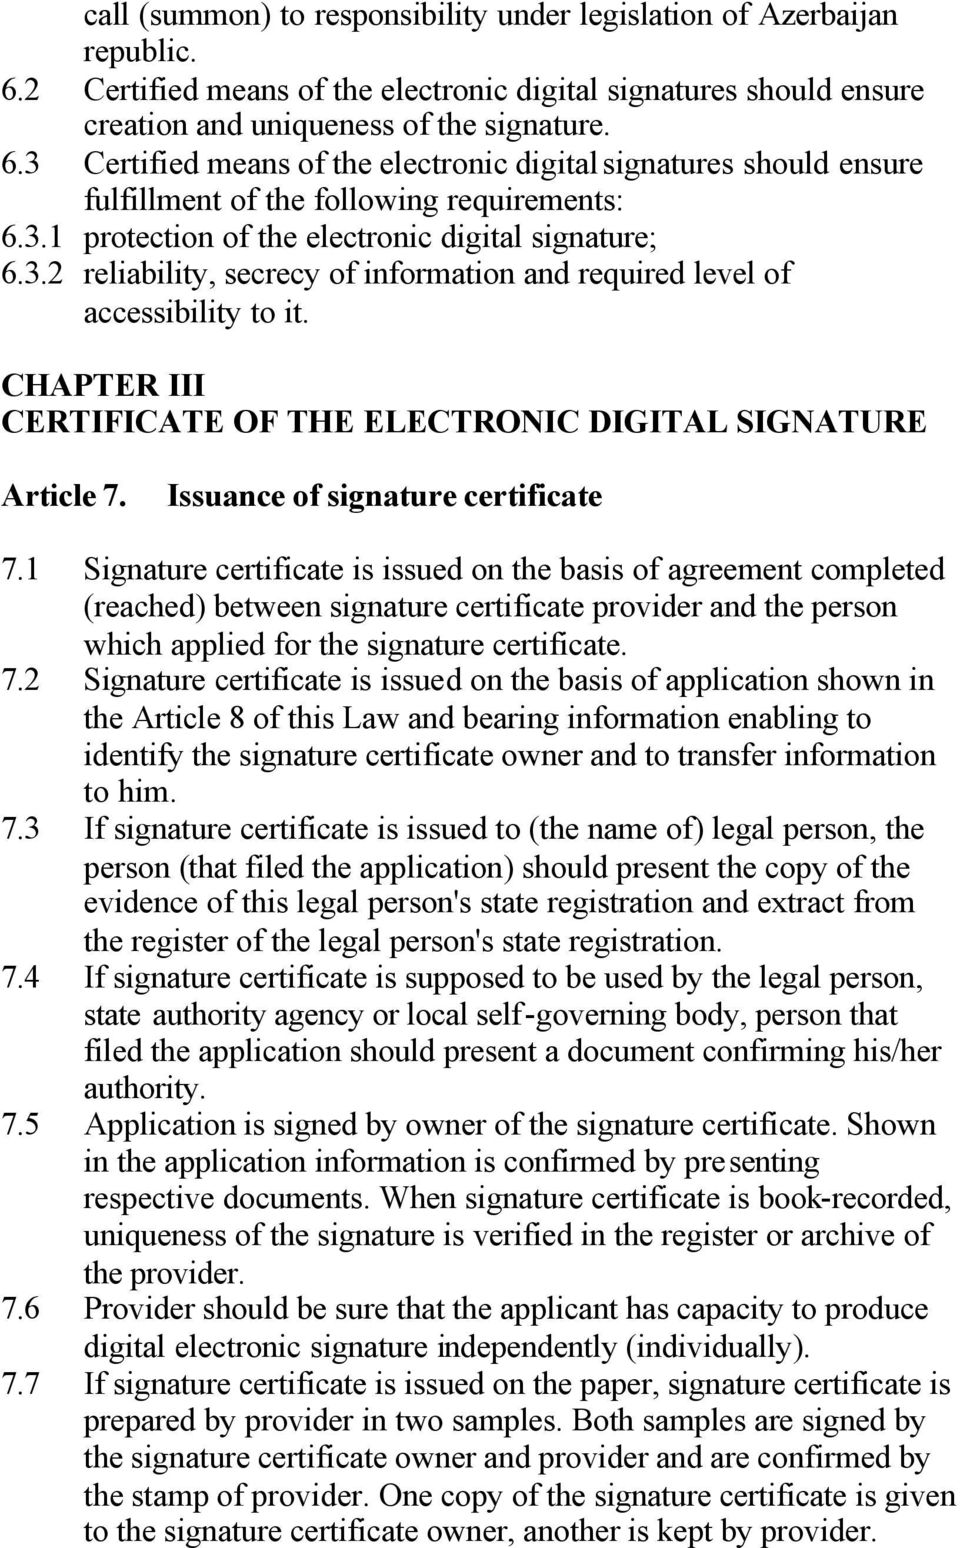 CHAPTER III CERTIFICATE OF THE ELECTRONIC DIGITAL SIGNATURE Article 7. Issuance of signature certificate 7.